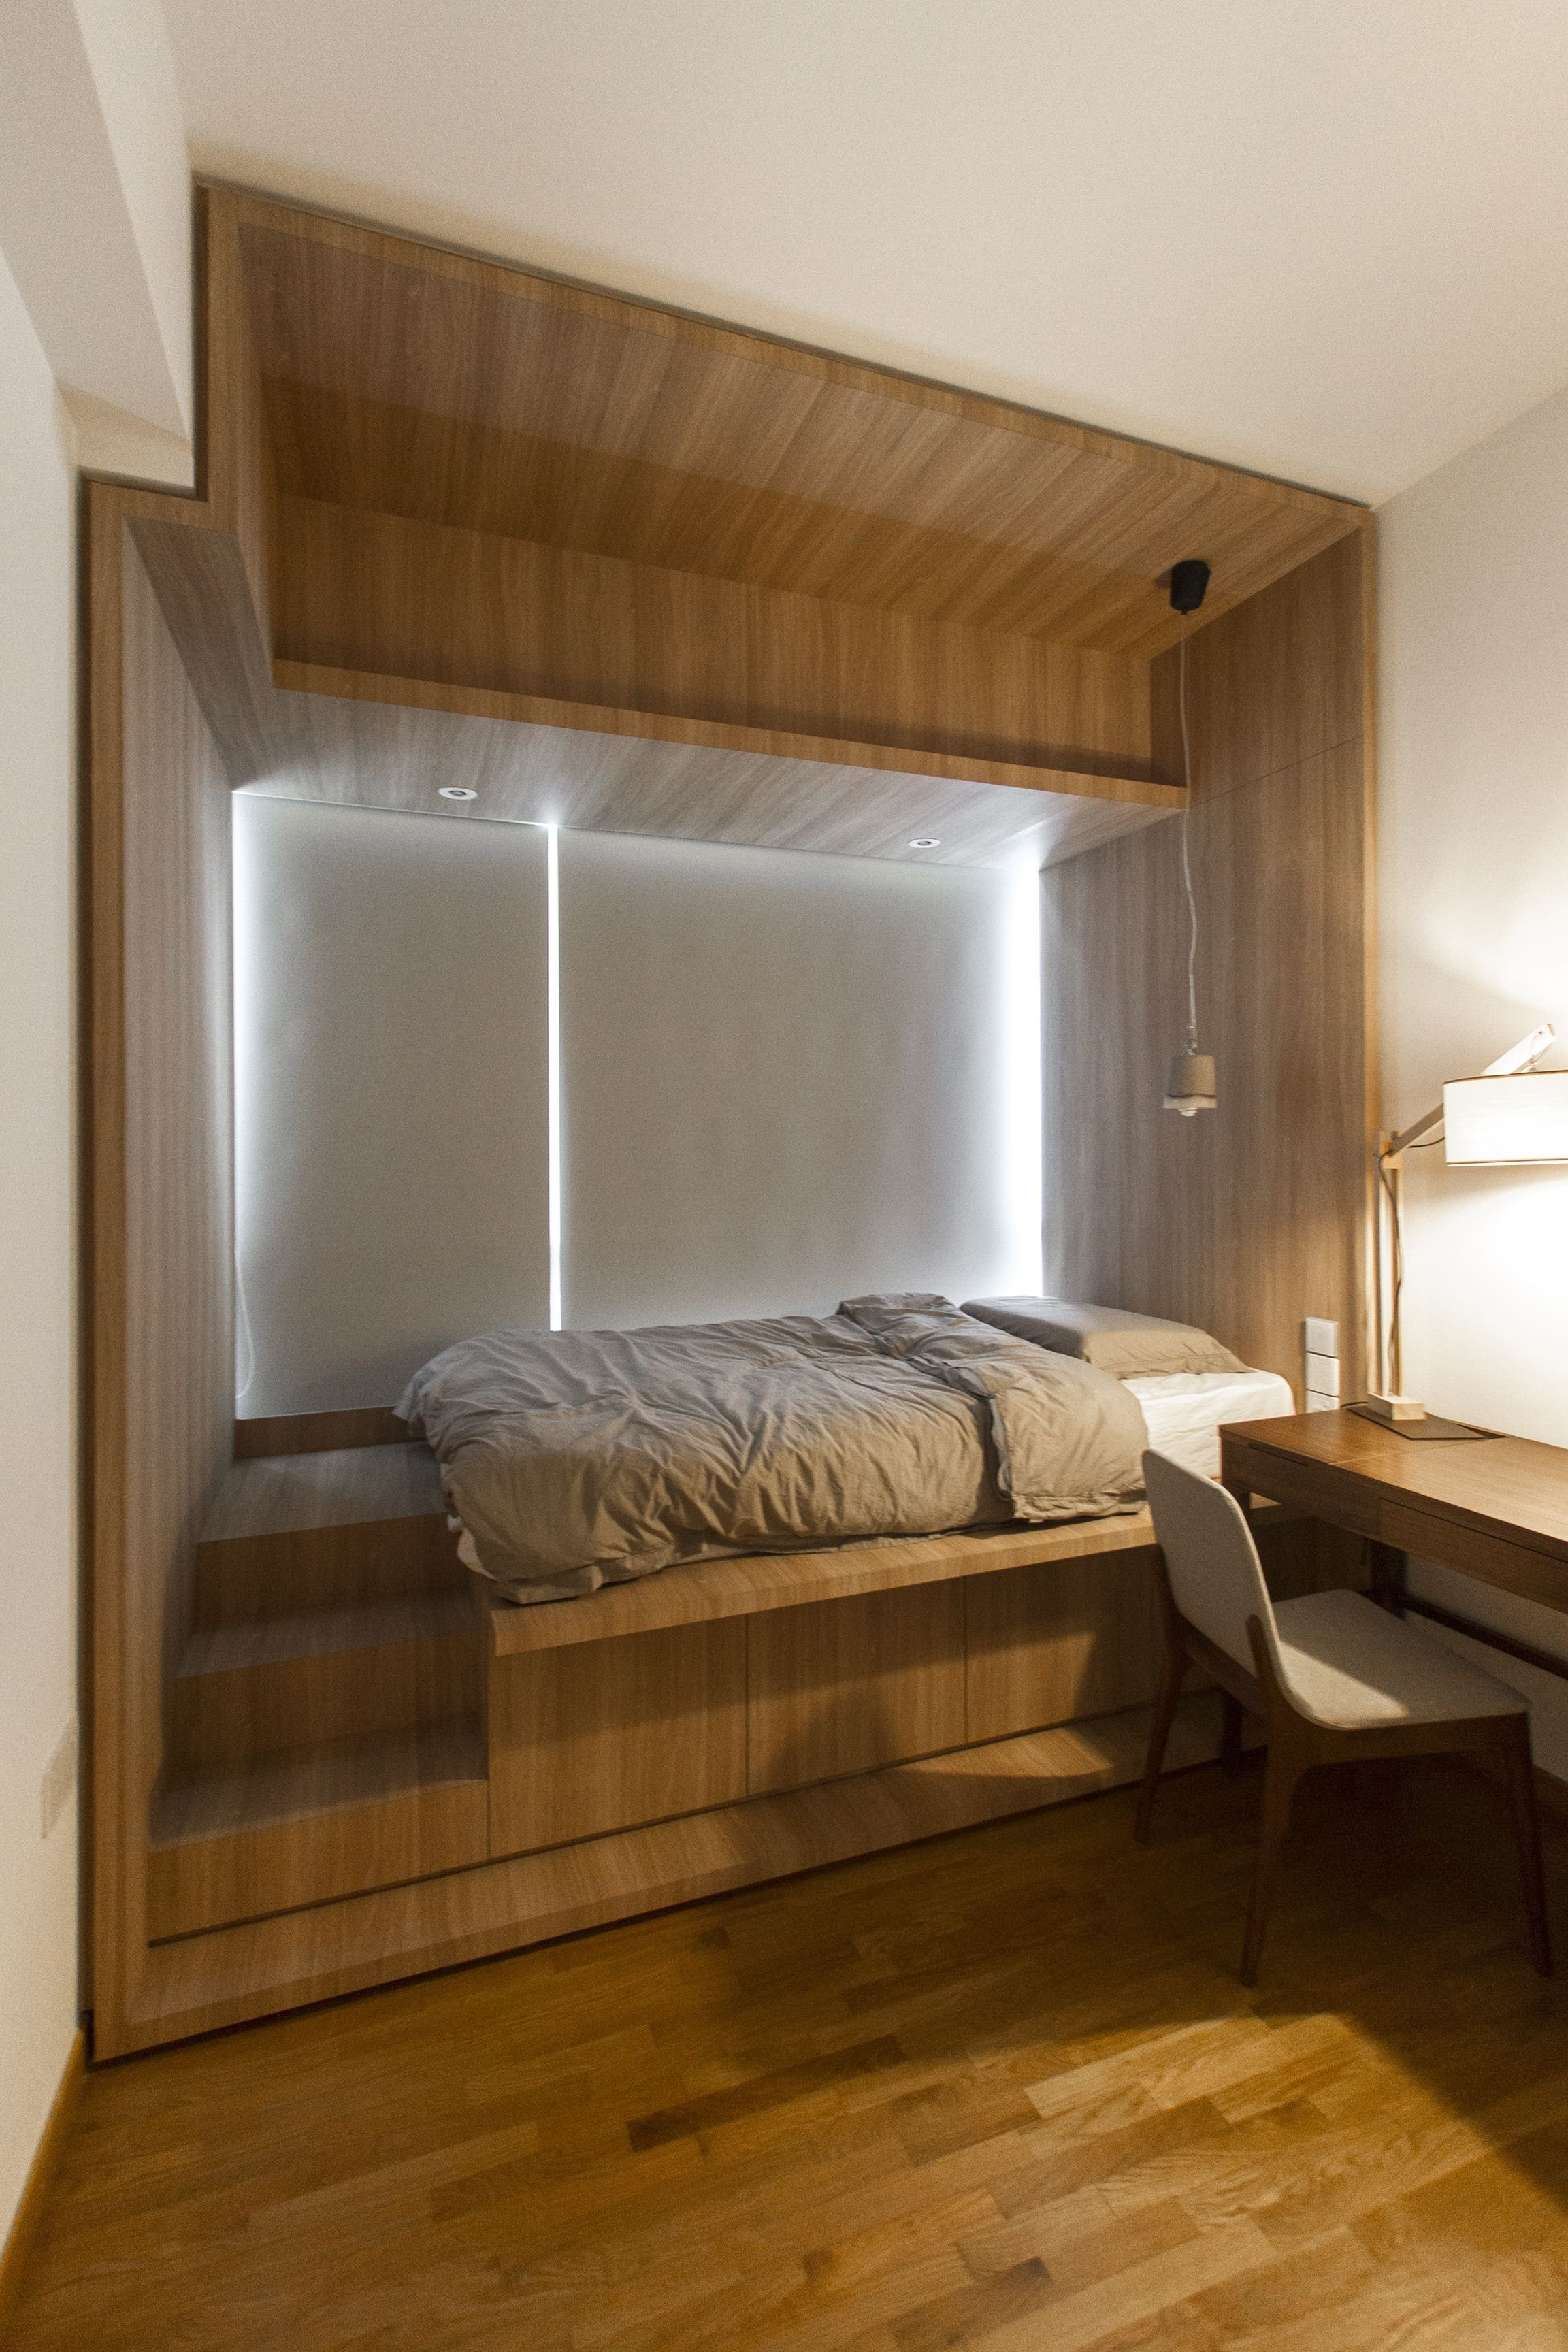 Best Ao Studios The Minton Apartment Bed Platform Singapore With Pictures